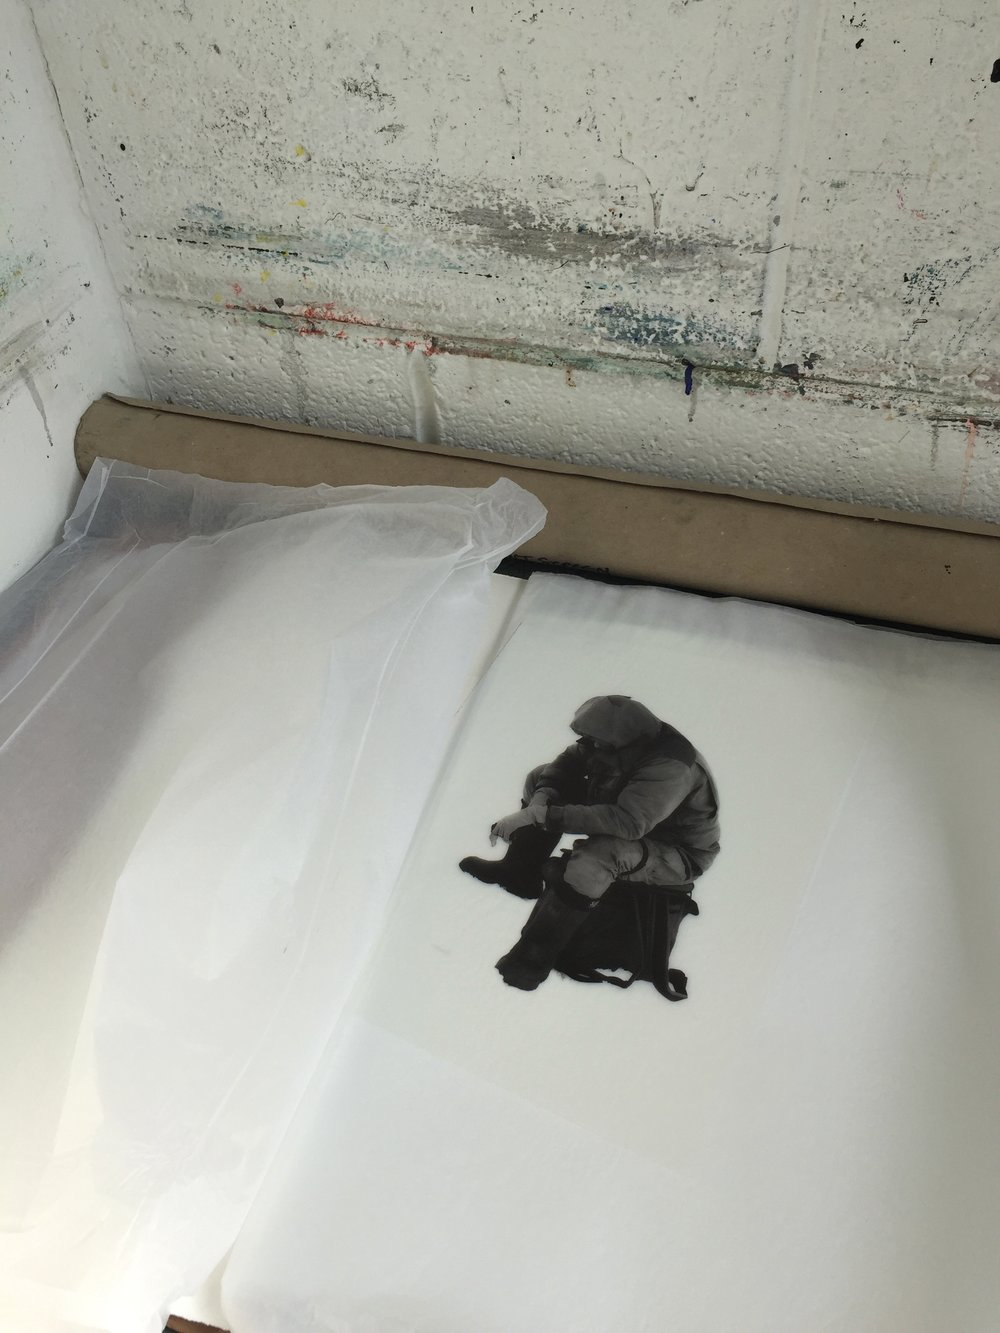 photo etching prints from Lapland - paper, ice, forestry, people, isolation. Light.